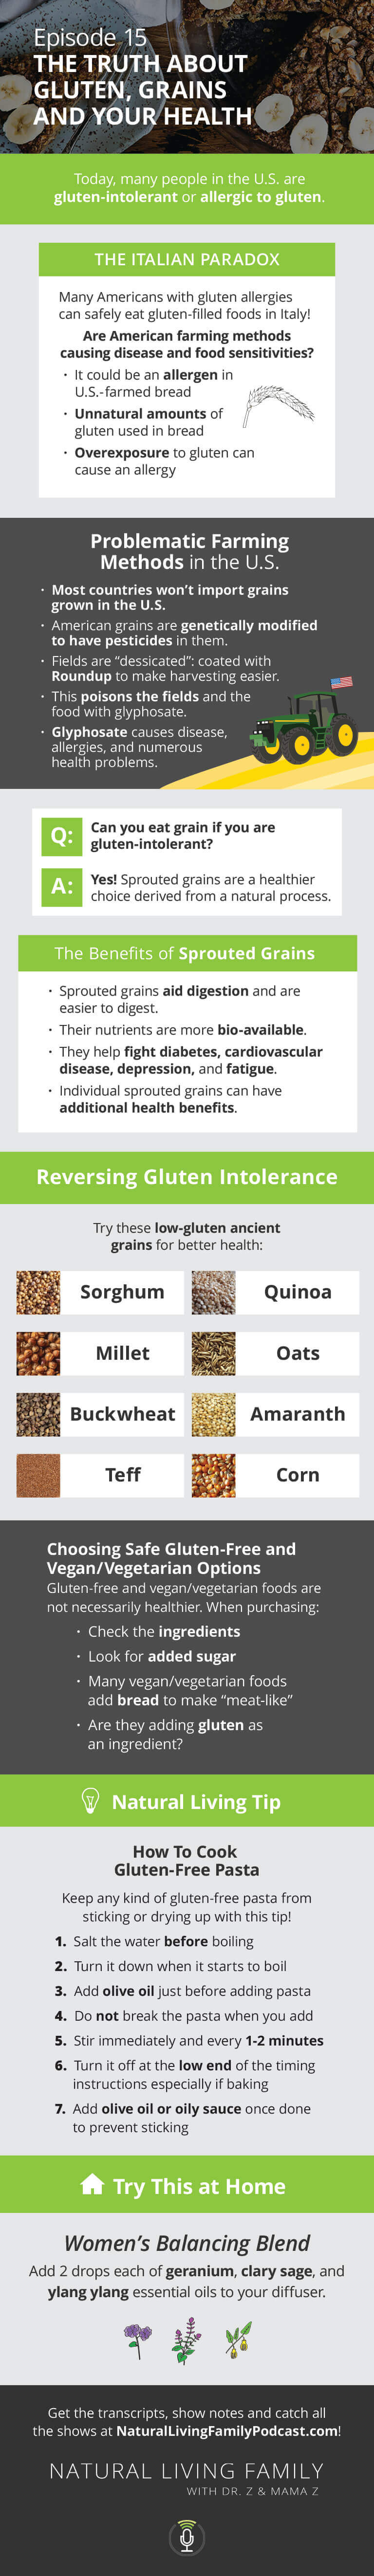 Truth About Grains Yes, You Can Have Your Gluten-Free Cake and Eat It, Too! Podcast Episode 15 Infographic